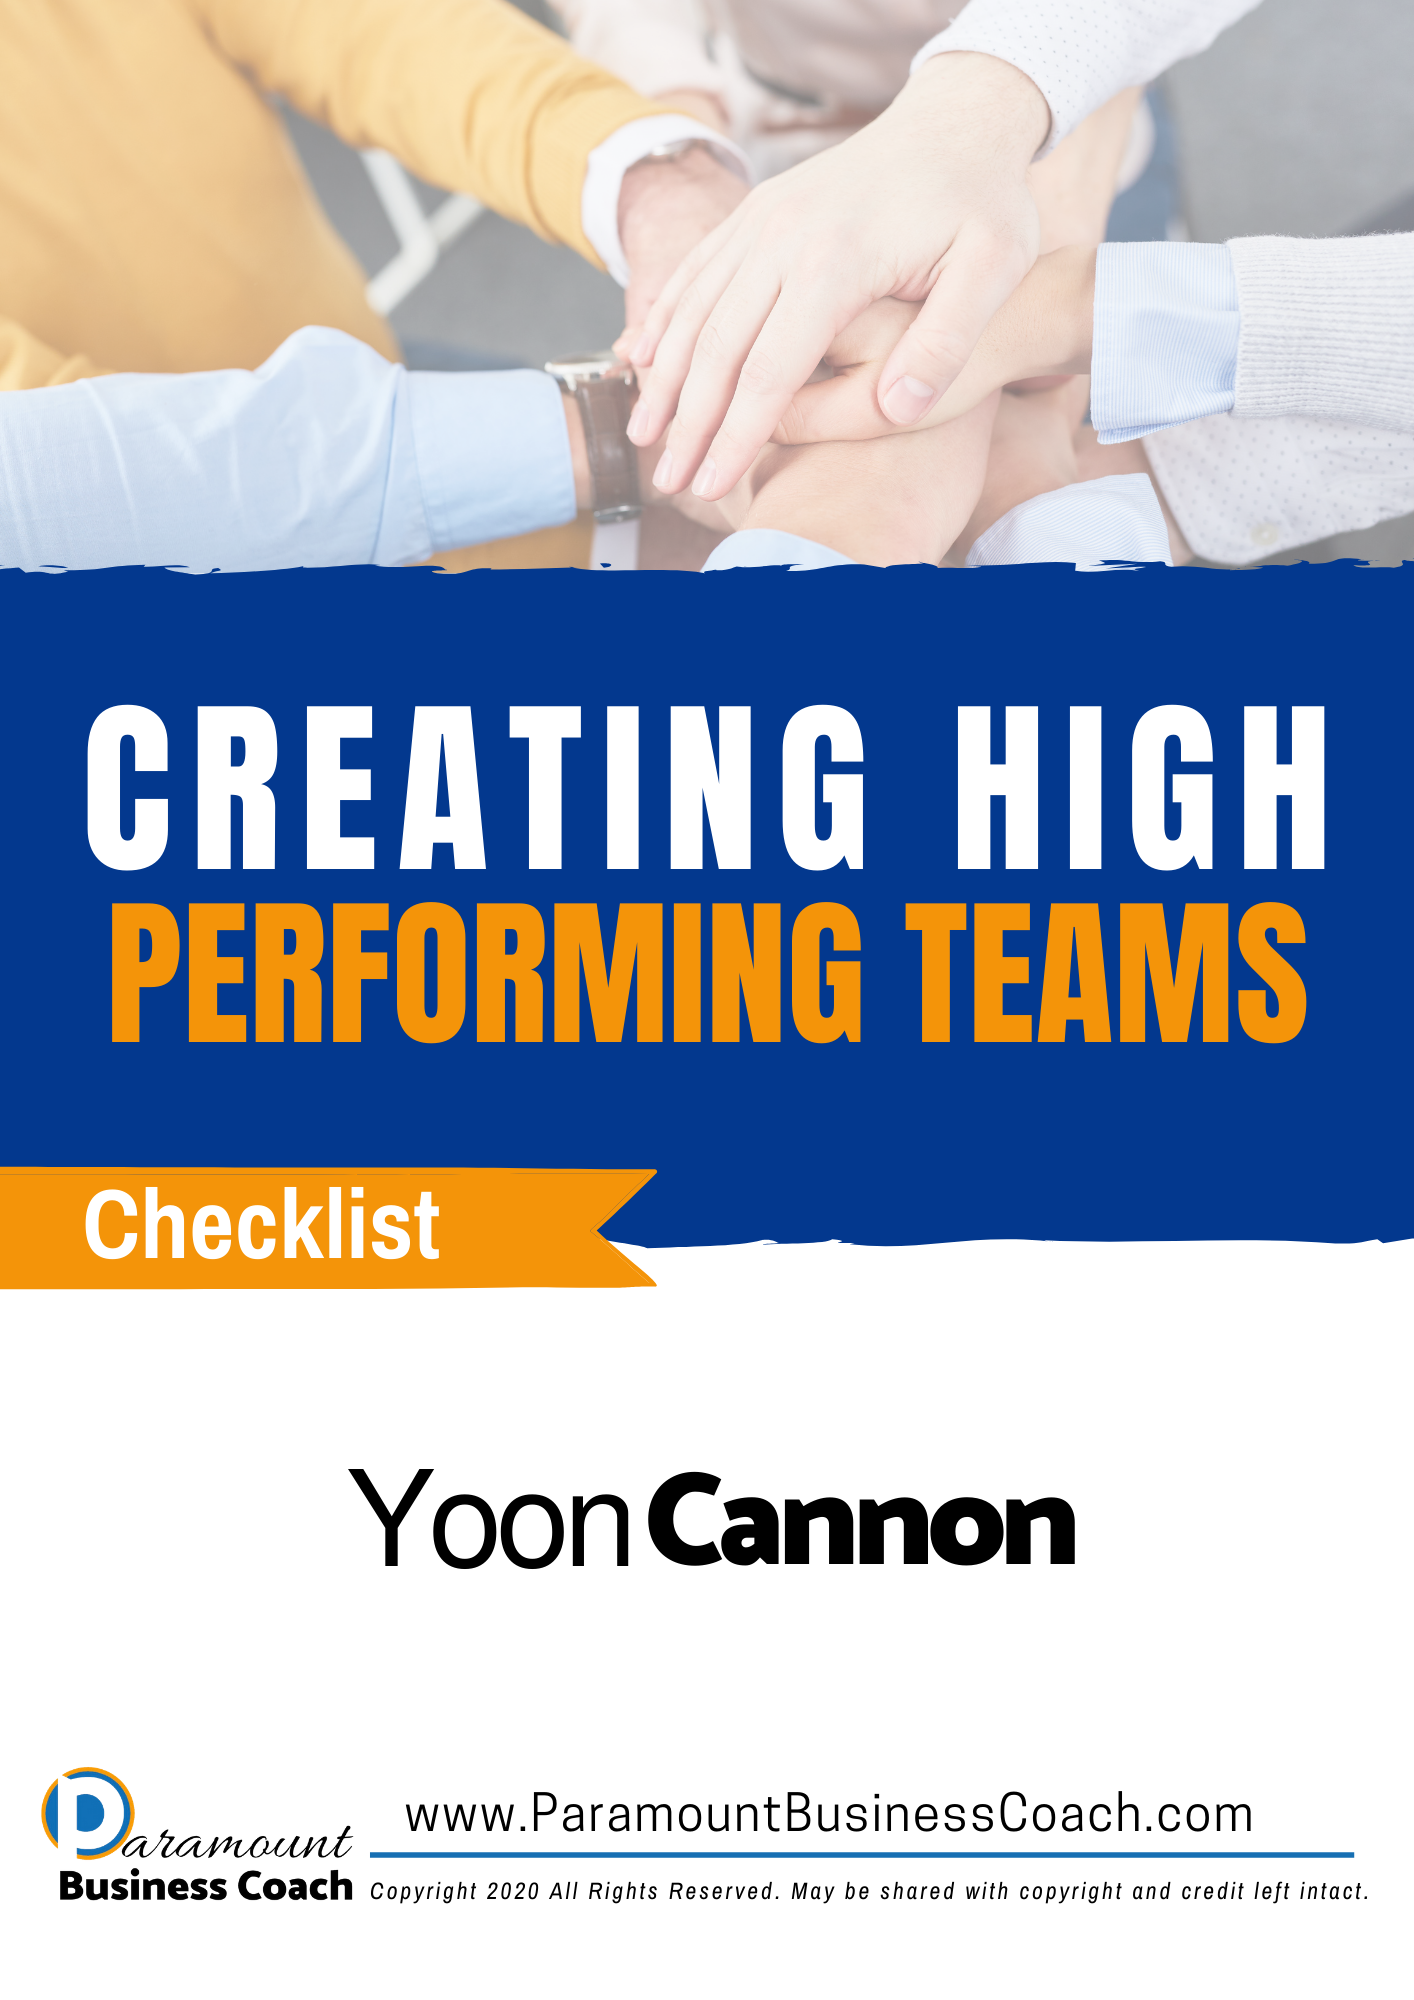 Download this 11-point checklist and start boosting your team's productivity! Works for both onsite employees and virtual assistants!